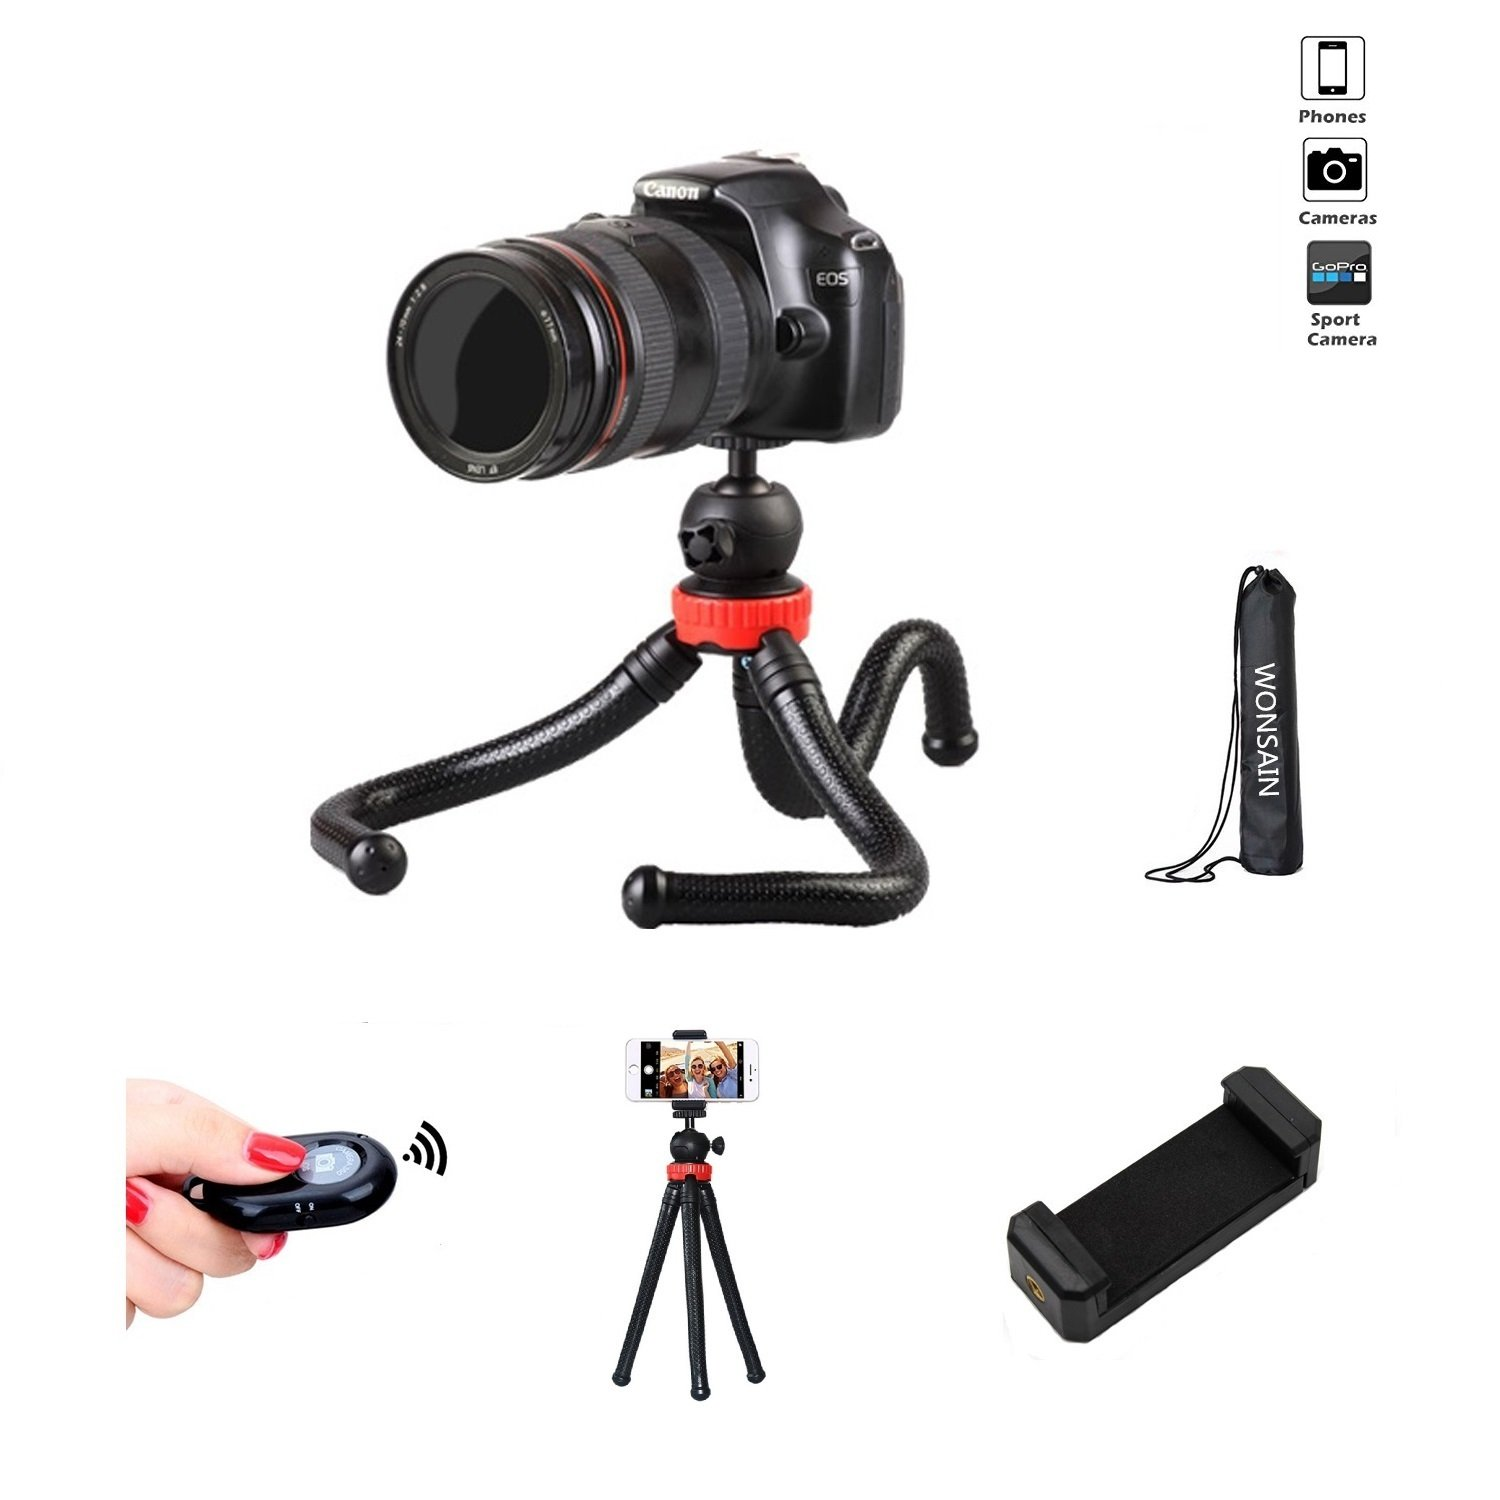 Premium Phone Camera Tripod, Wonsain 12'' Flexible Mini Travel Tripod Stand with Bluetooth Remote Control for GoPro/Canon/Nikon/Sony DSLR/Cellphone Tripod Stand Holder For iPhone/Android Phone